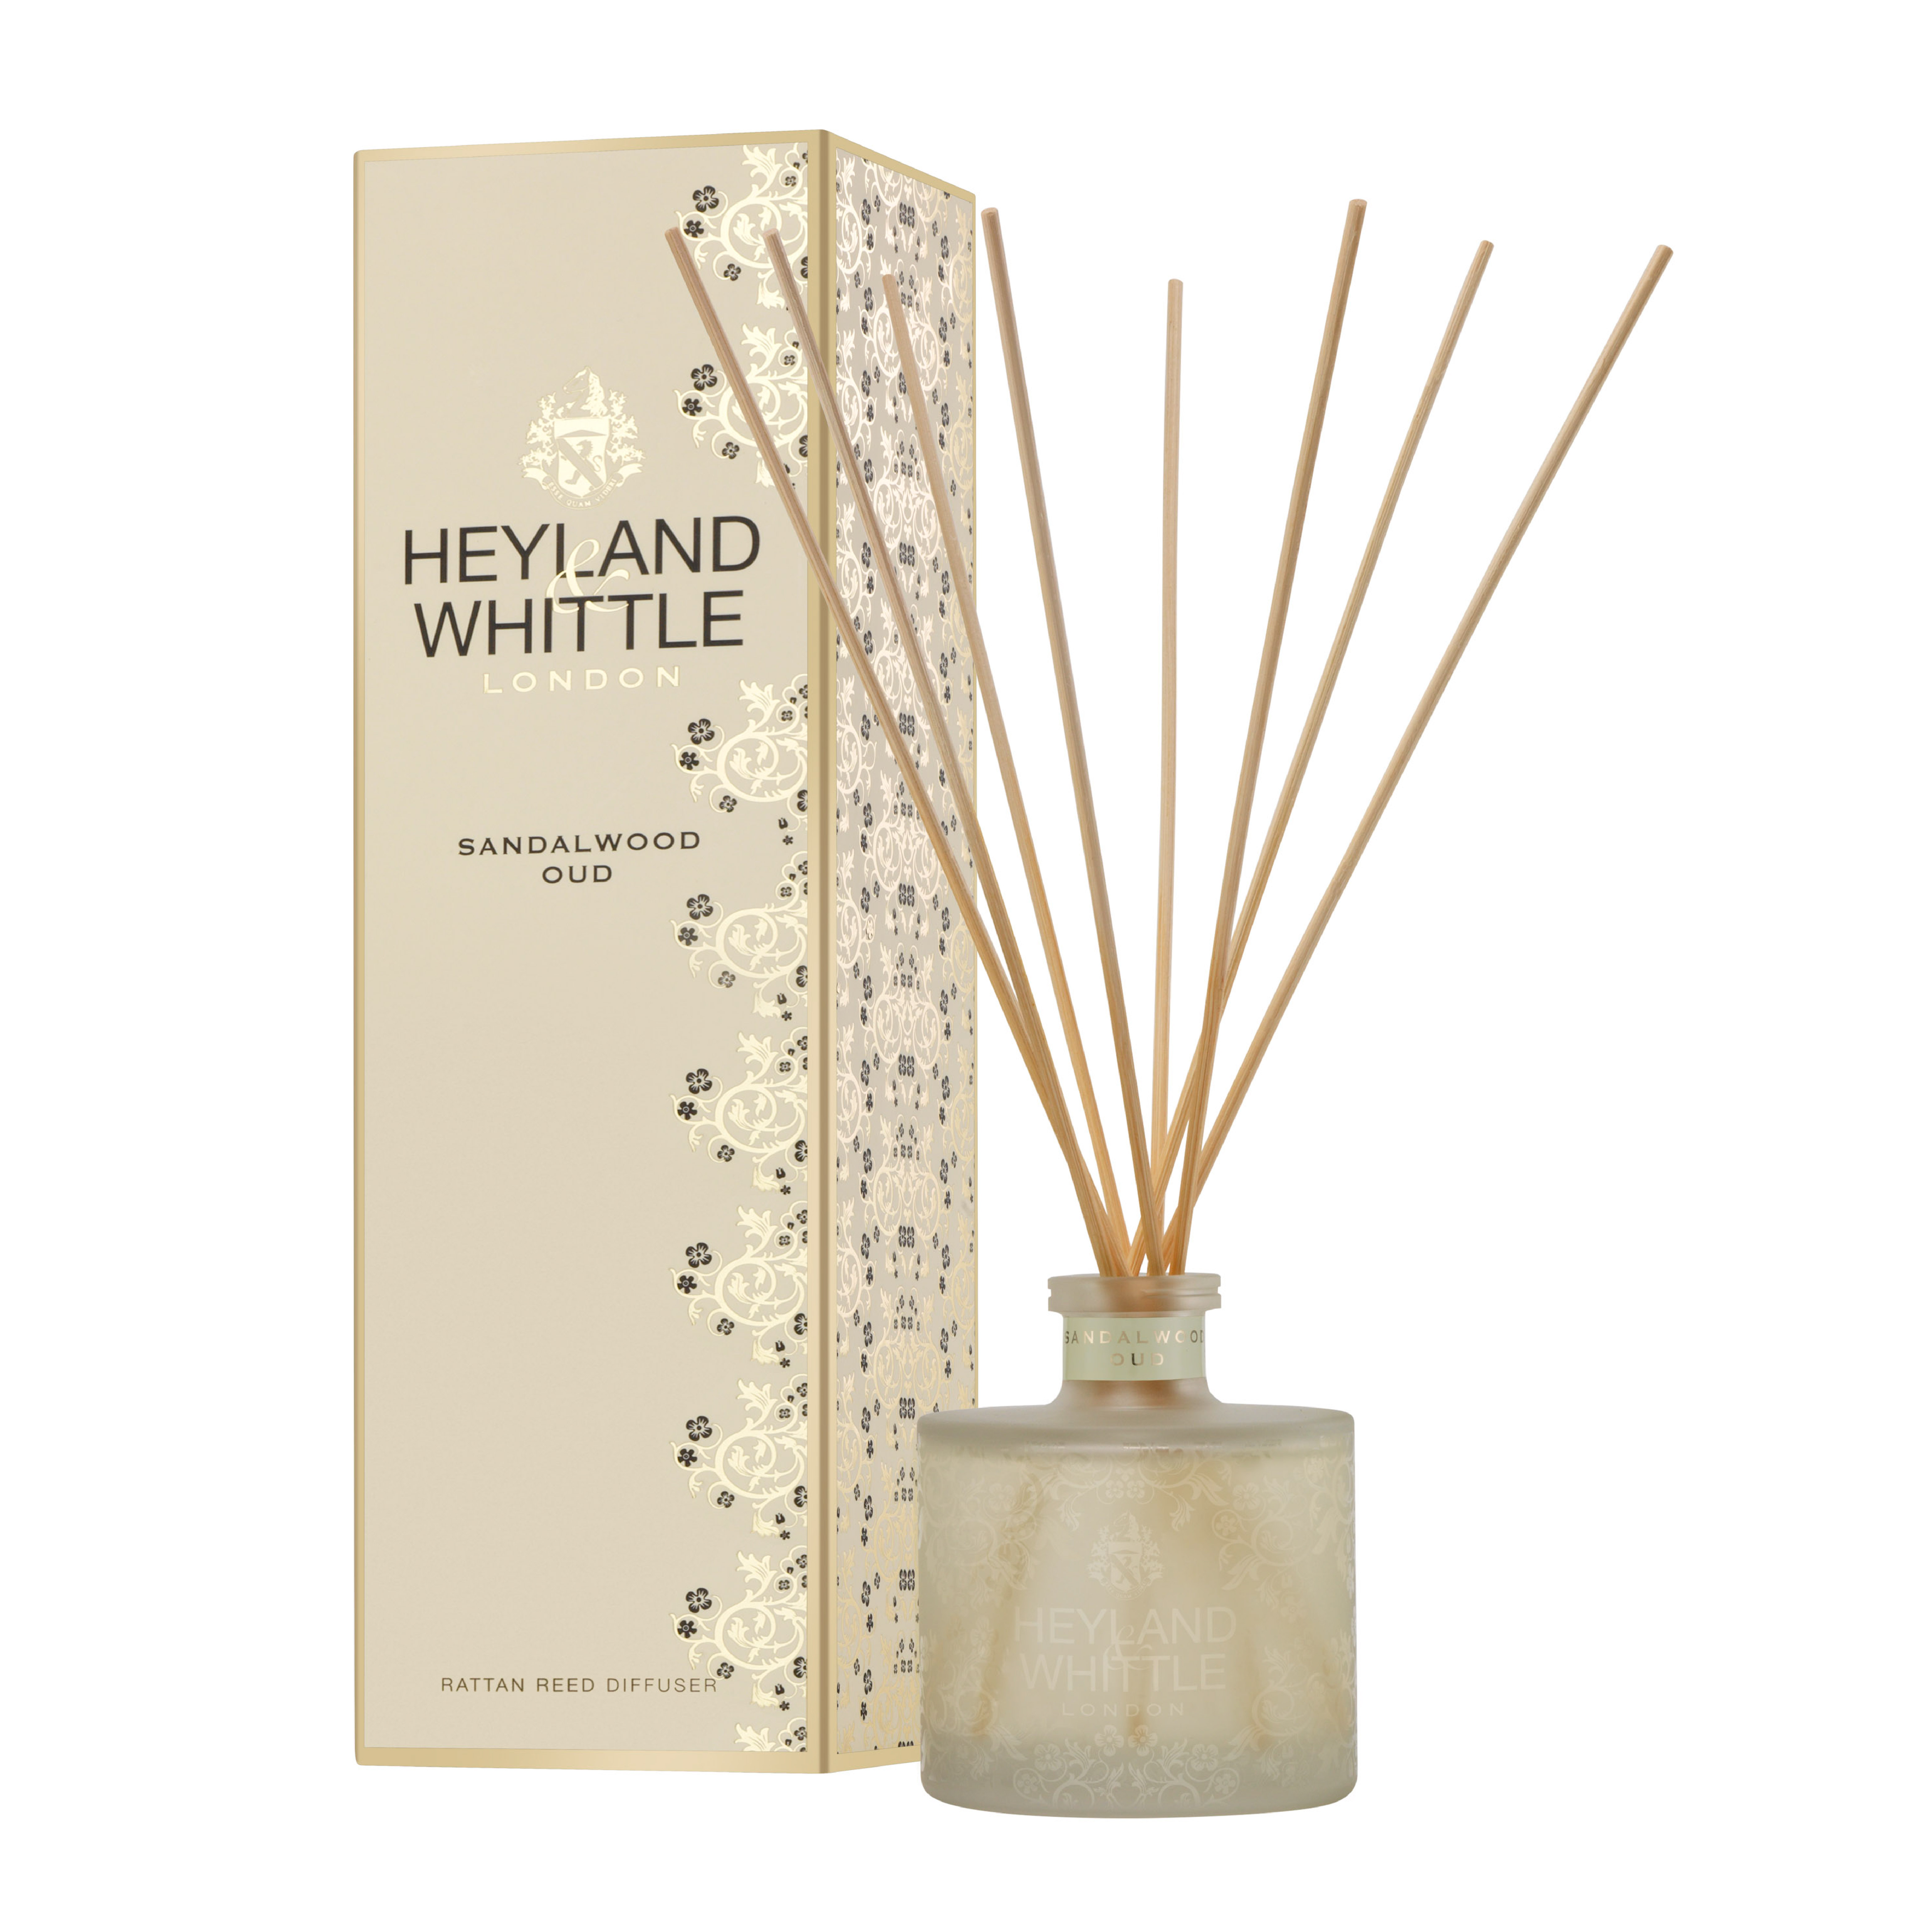 Heyland & Whittle Gold Classic Sandalwood Oud Reed Diffuser 6.7oz (200ml)